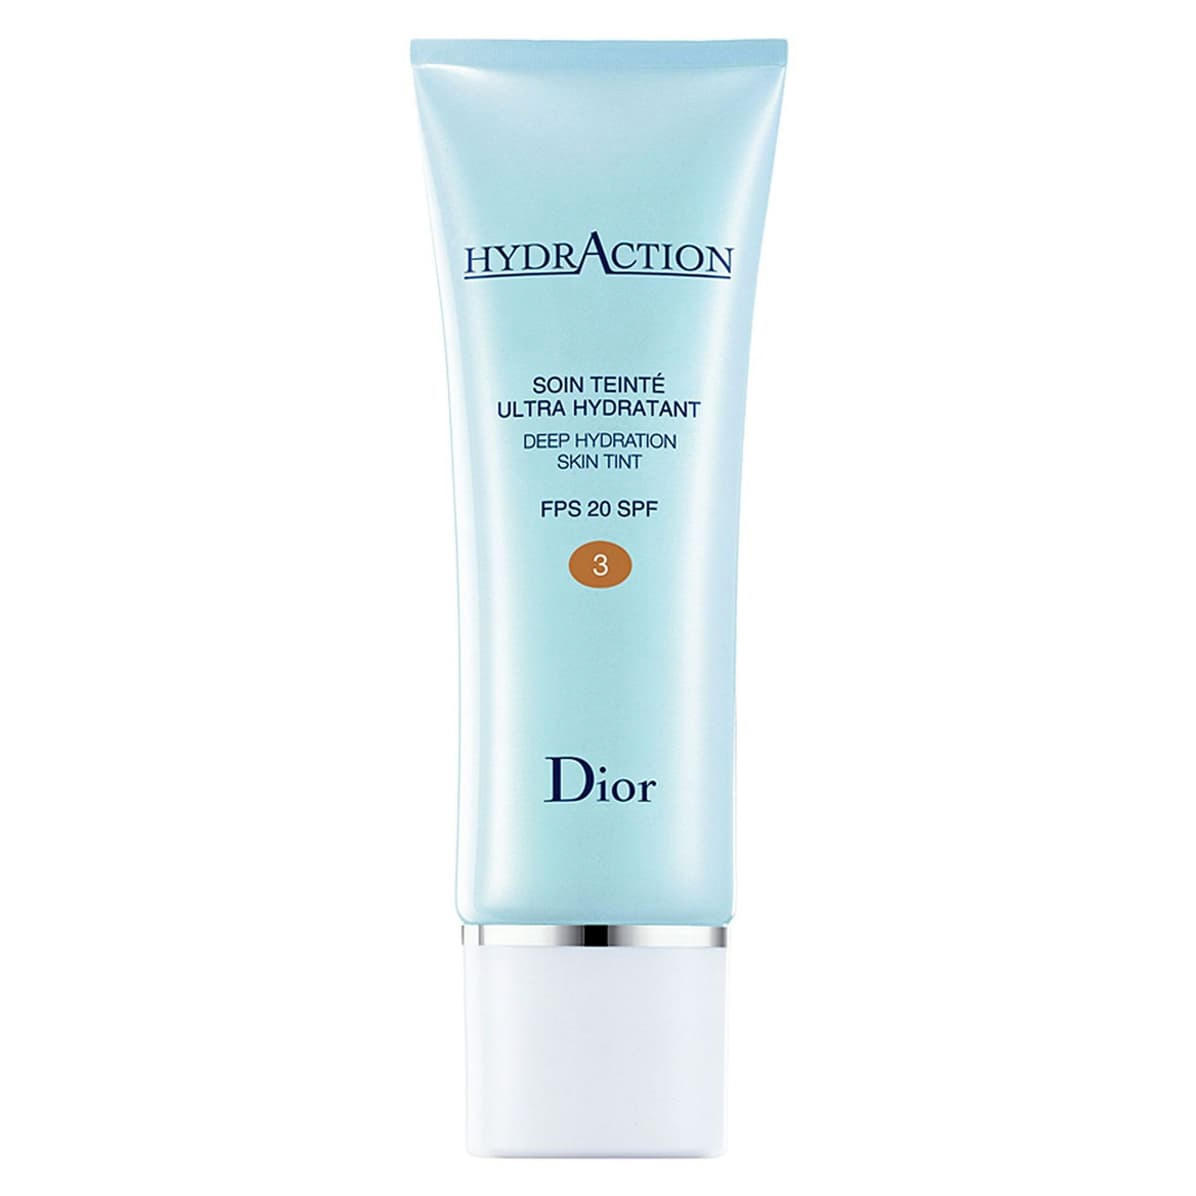 Dior HydrAction SPF20 Deep Hydrating Skin Tint 3